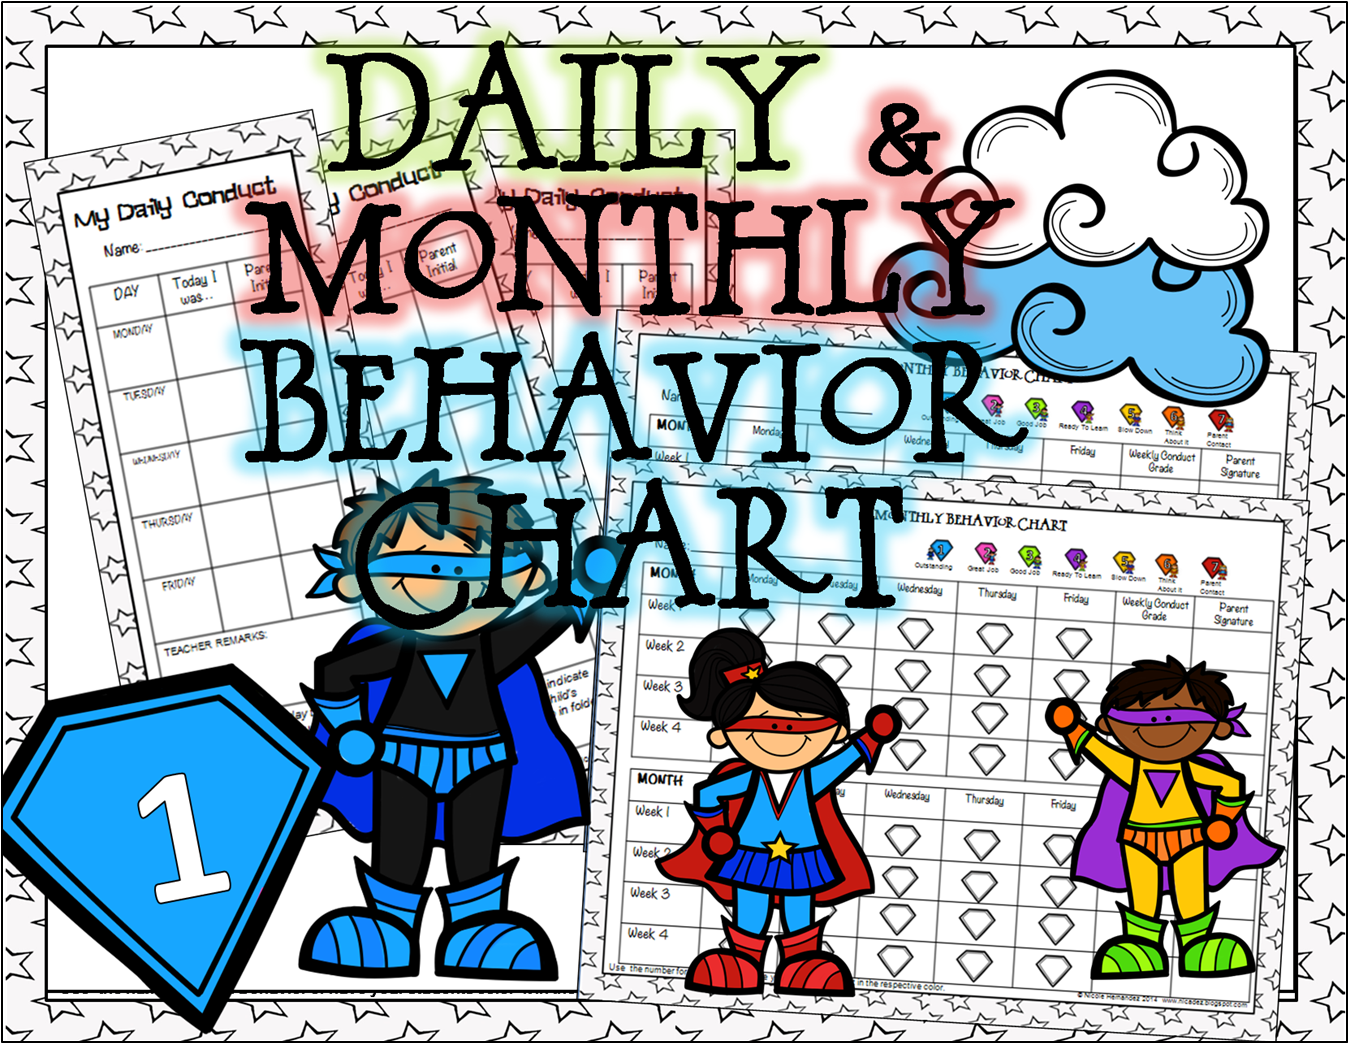 http://www.teacherspayteachers.com/Product/Daily-and-Monthly-Student-Behavior-Chart-1416614